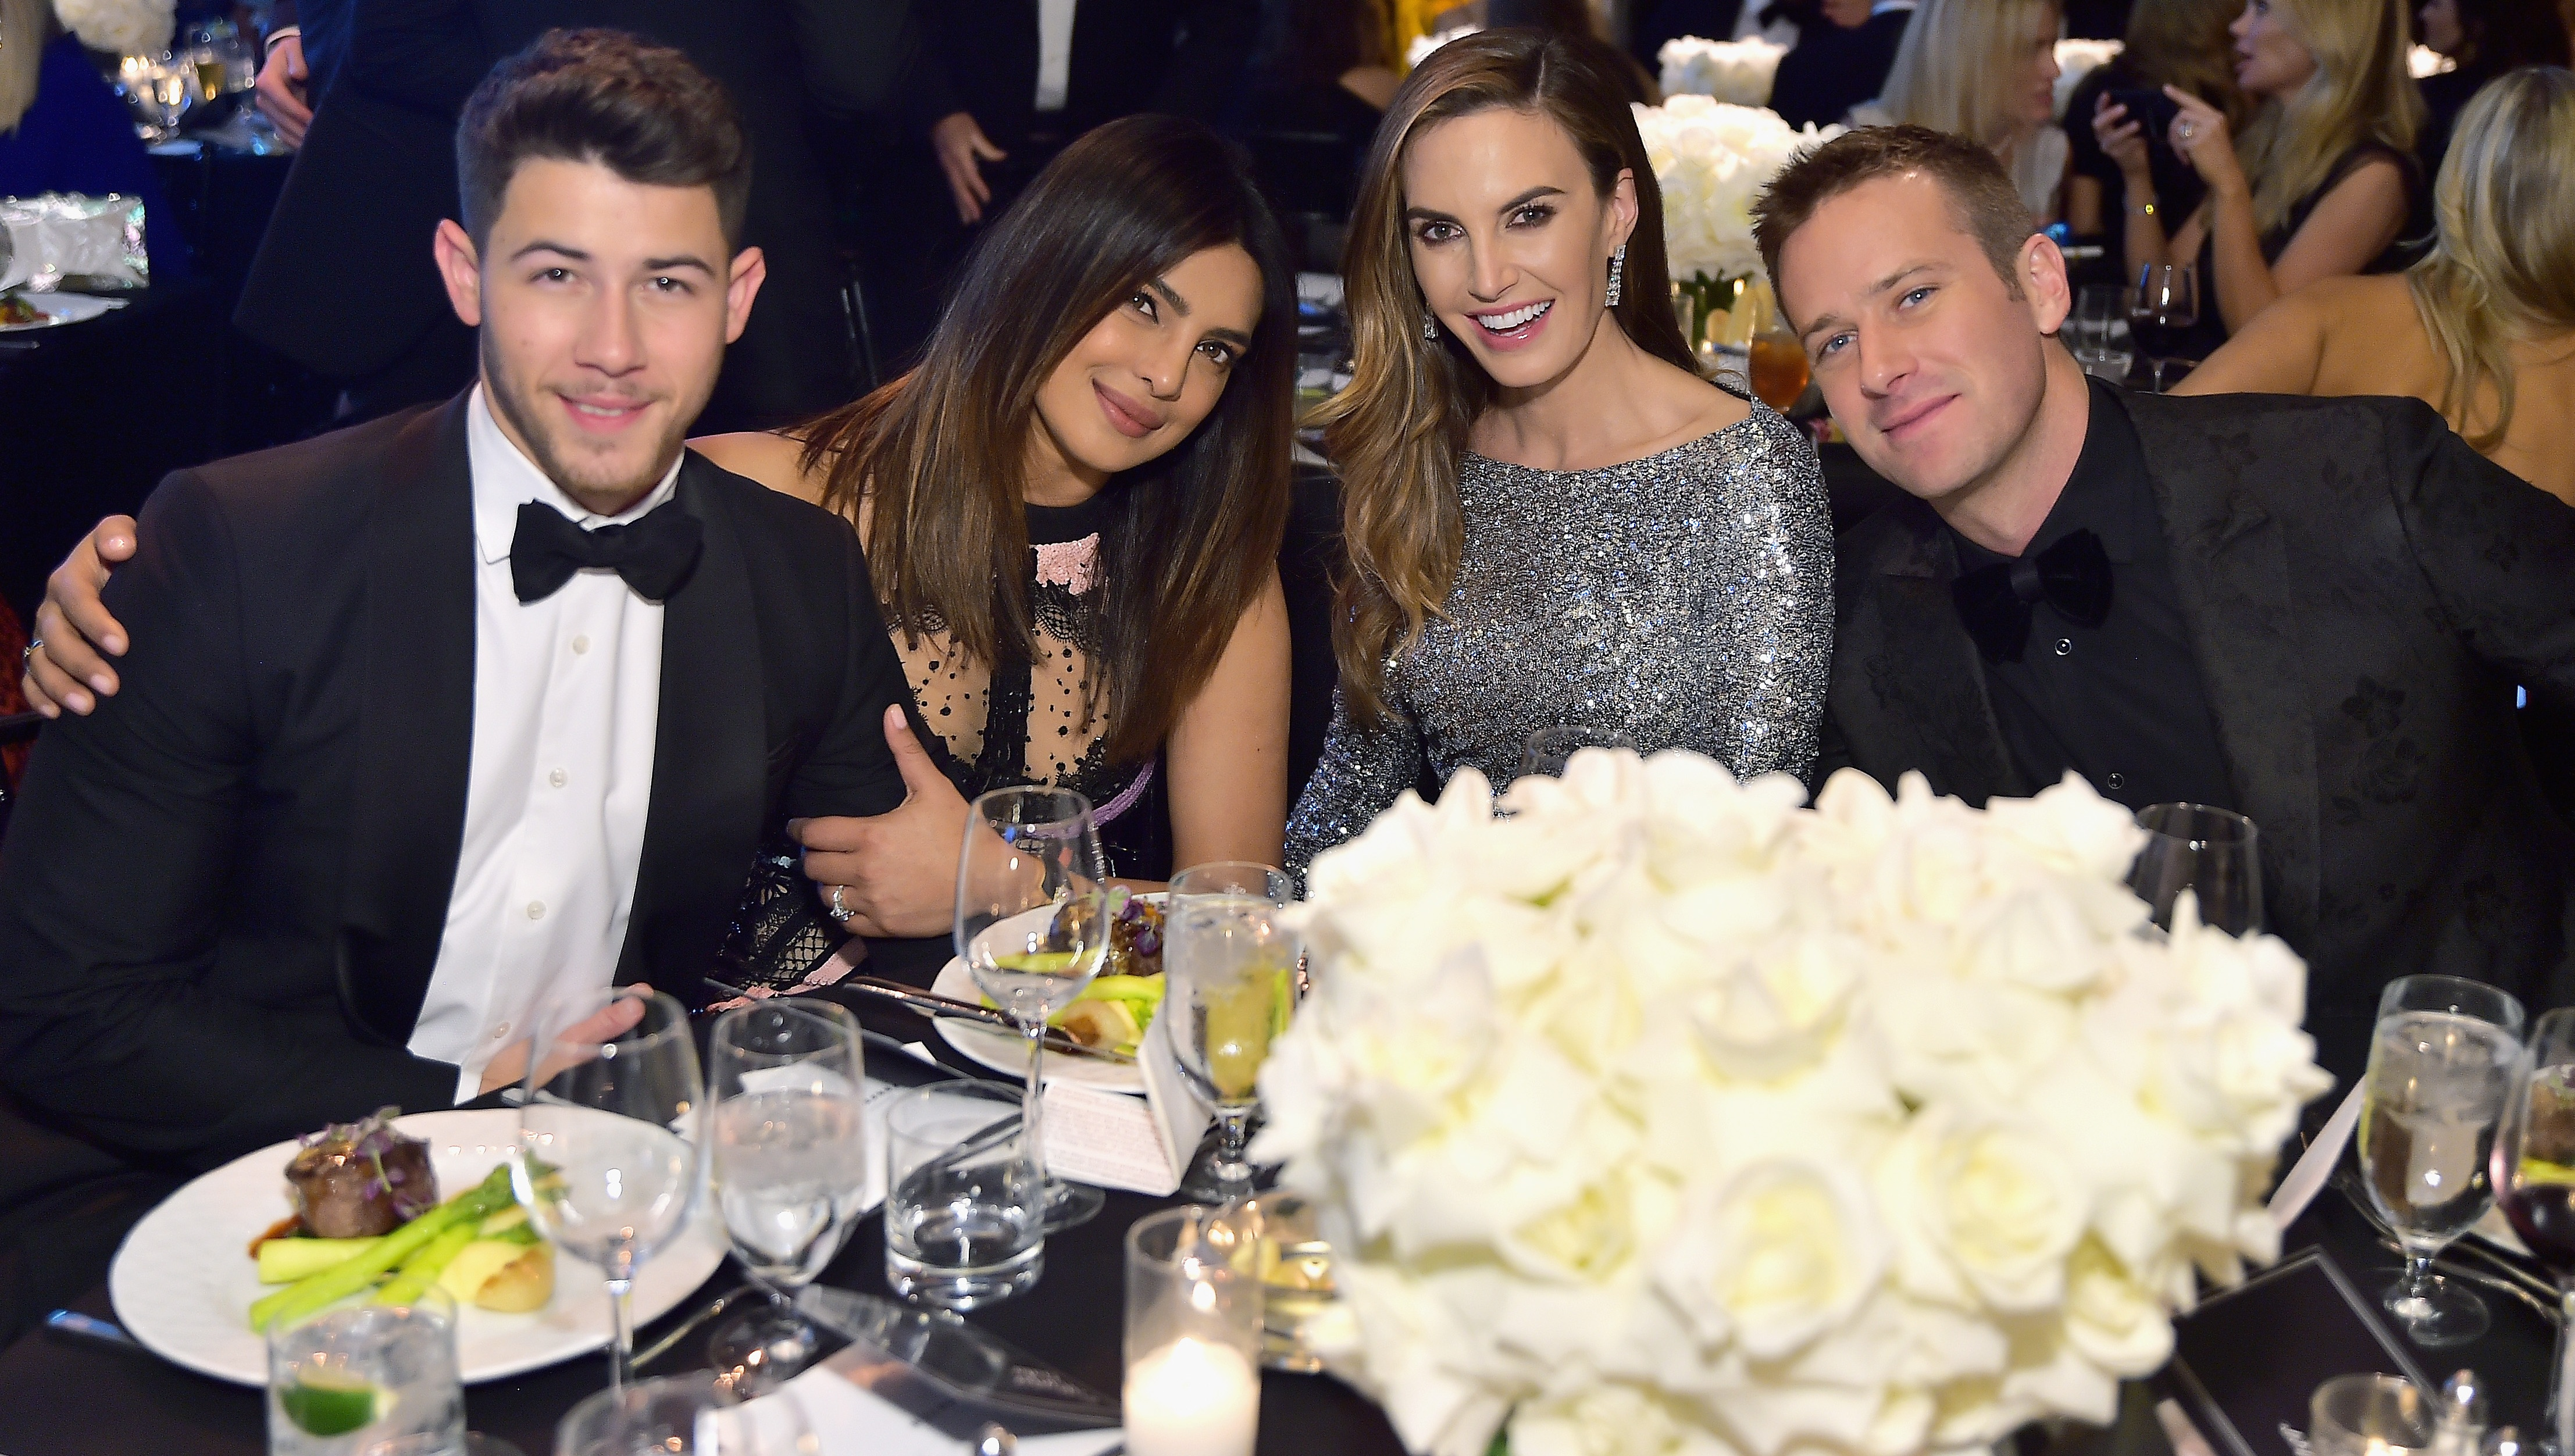 Nick Jonas, Priyanka Chopra, Elizabeth Chambers and Armie Hammer attend Learning Lab Ventures 2019 Gala Presented by Farfetch at Beverly Hills Hotel on January 31, 2019 in Beverly Hills, California